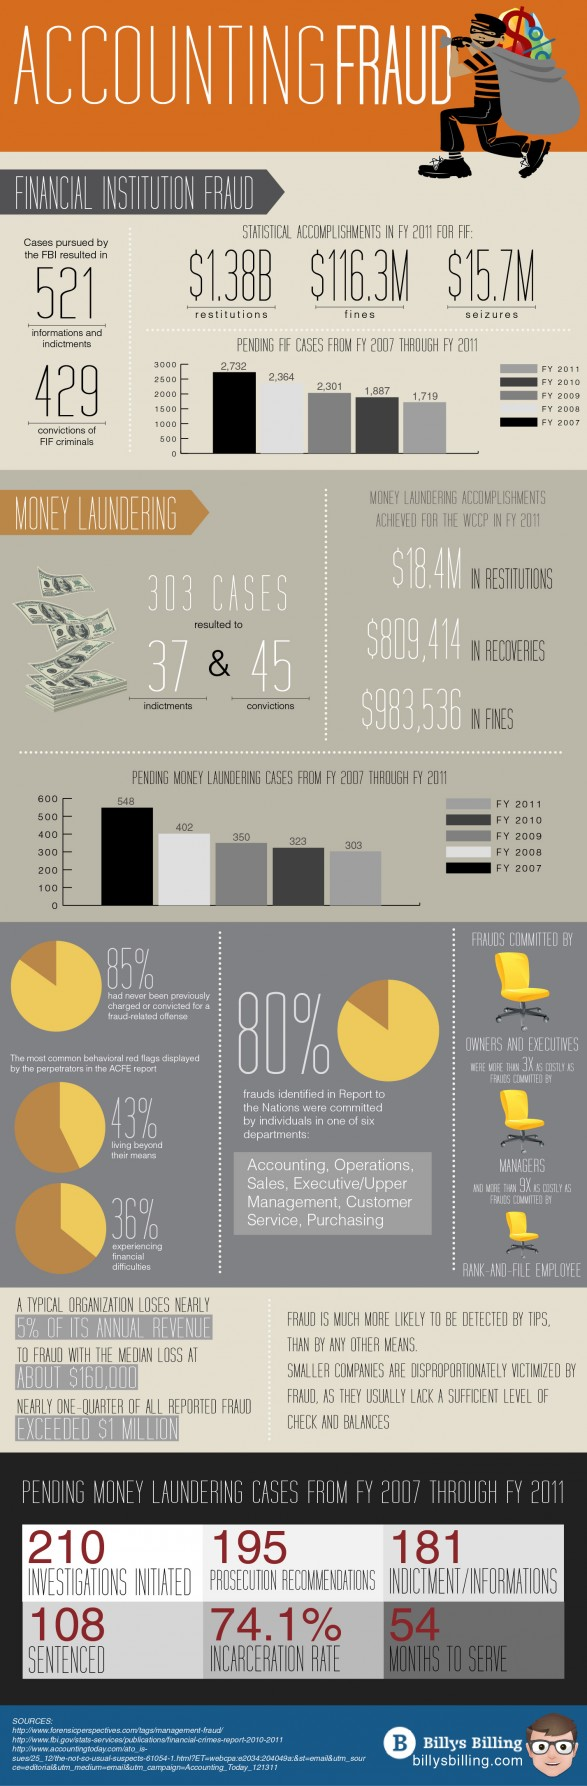 Accounting Fraud Infographic